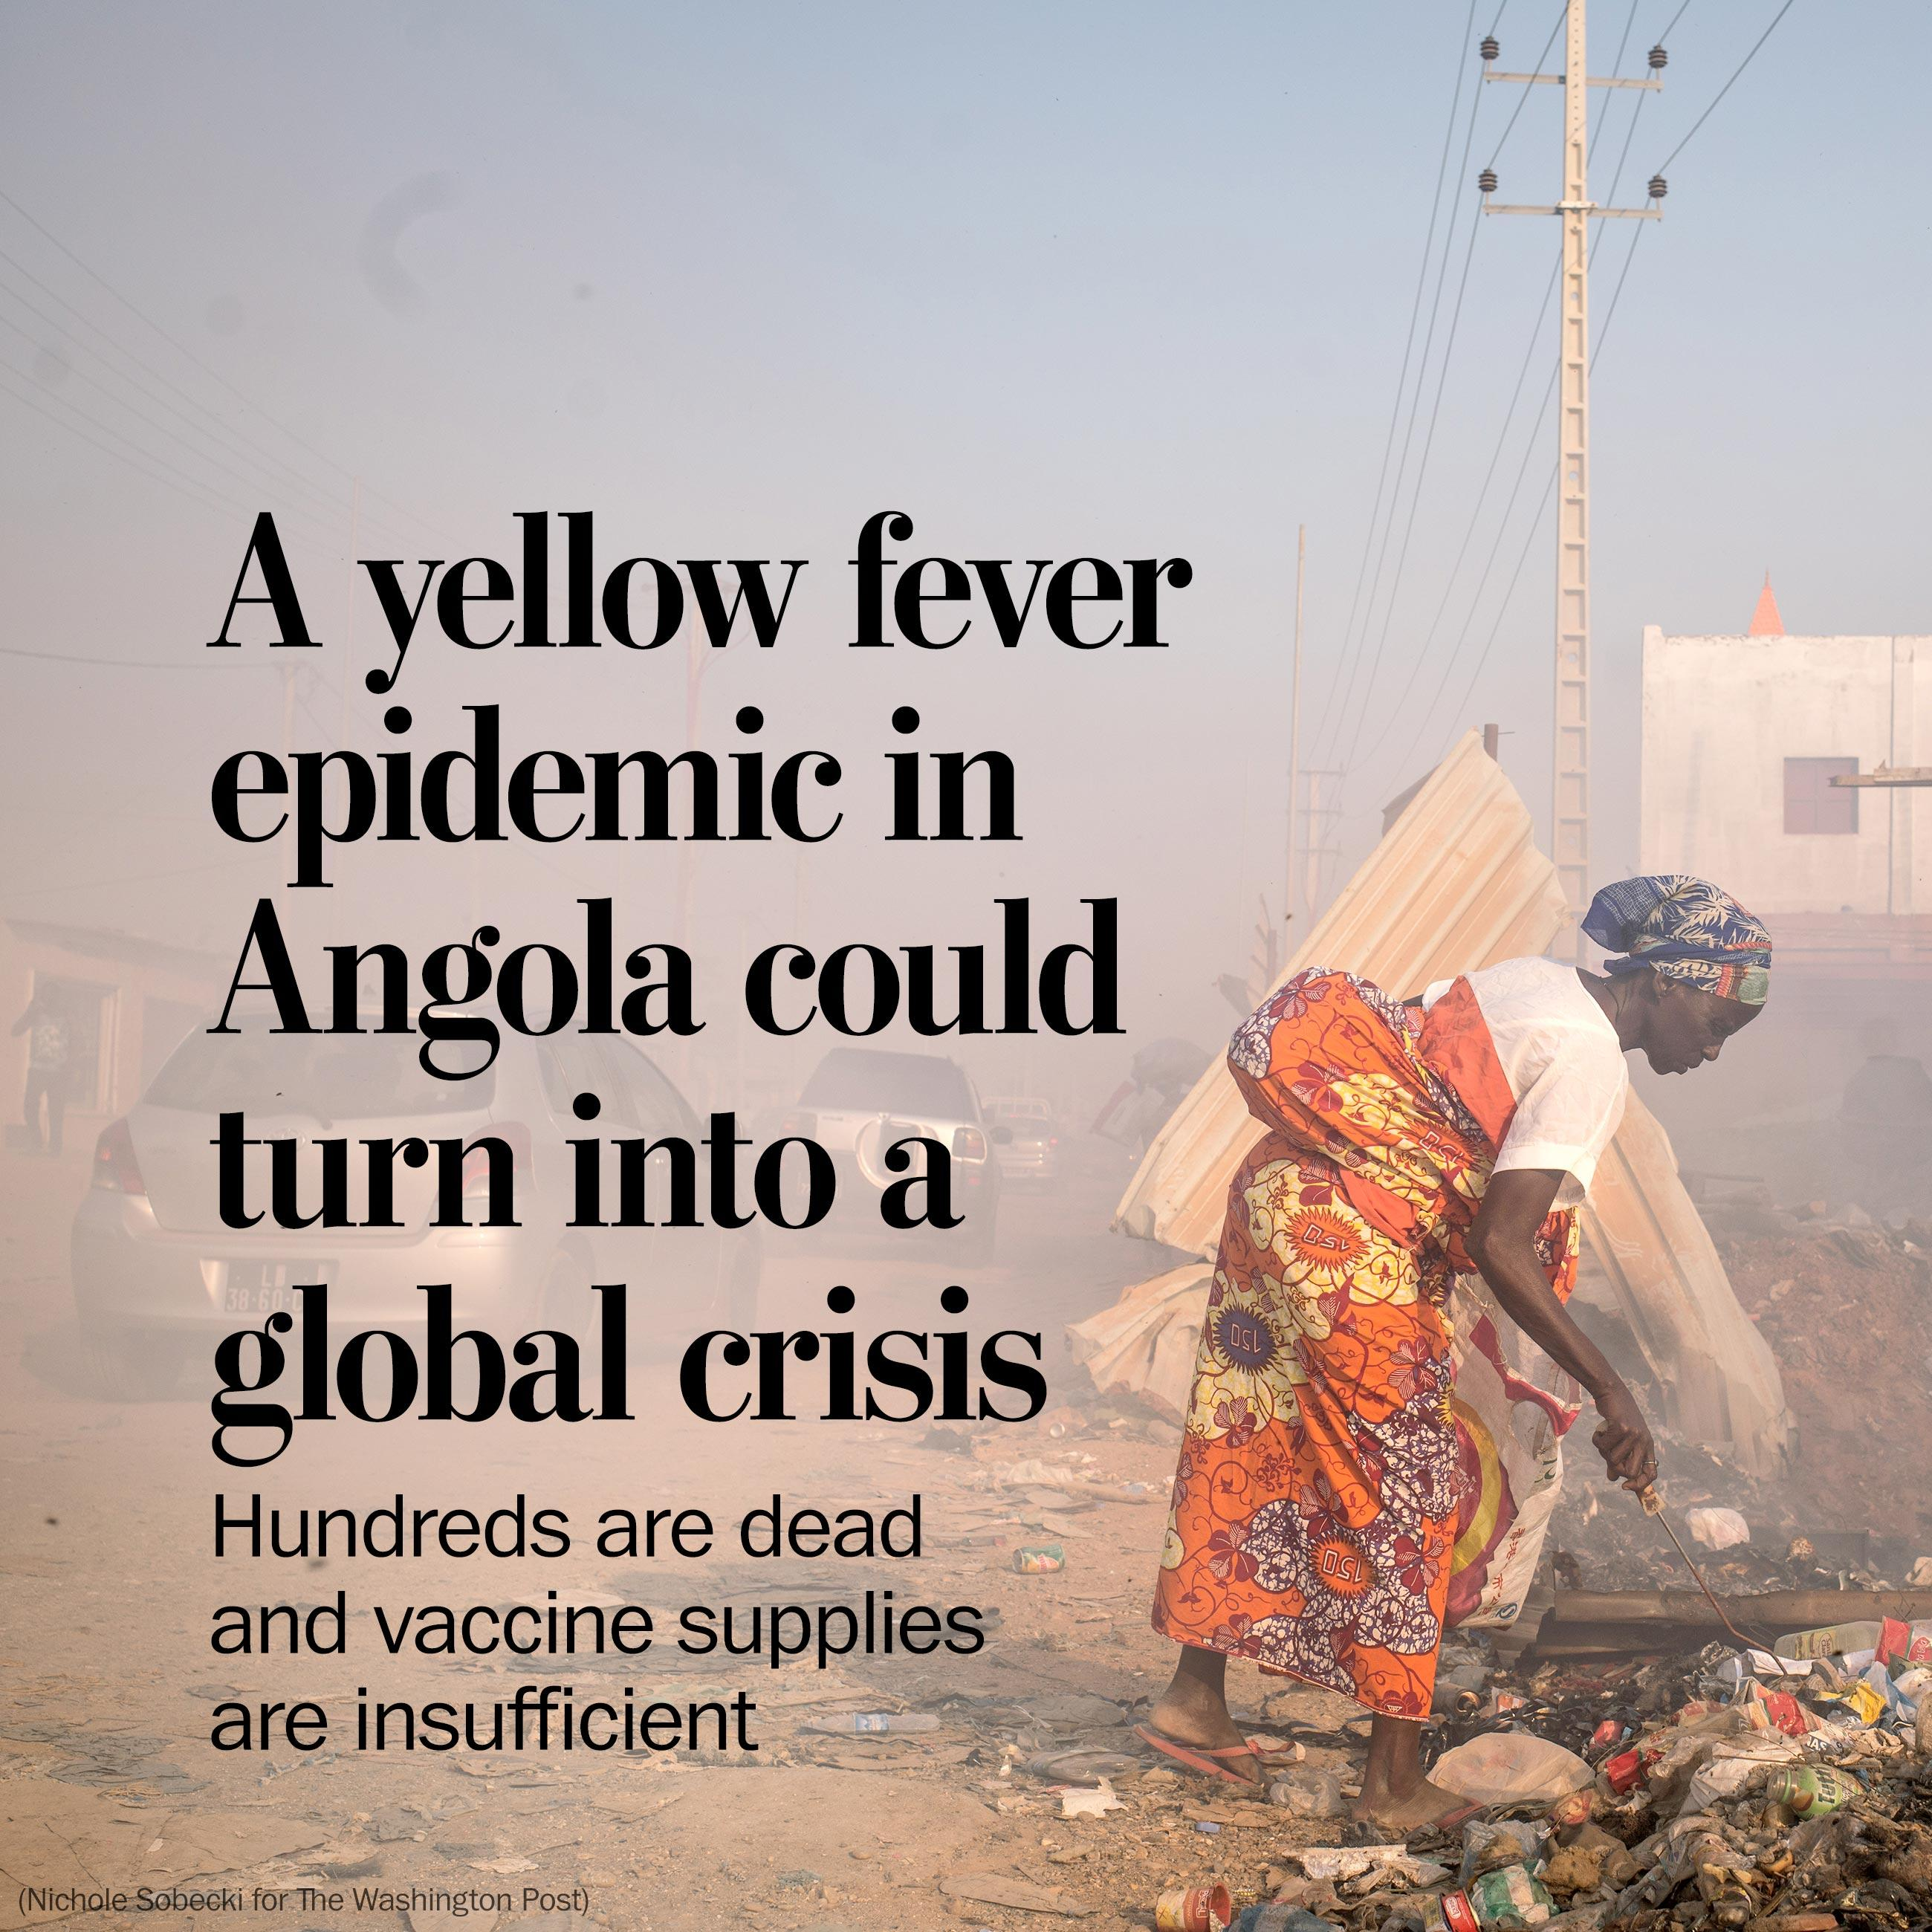 A yellow fever epidemic in Angola could turn into a global crisis